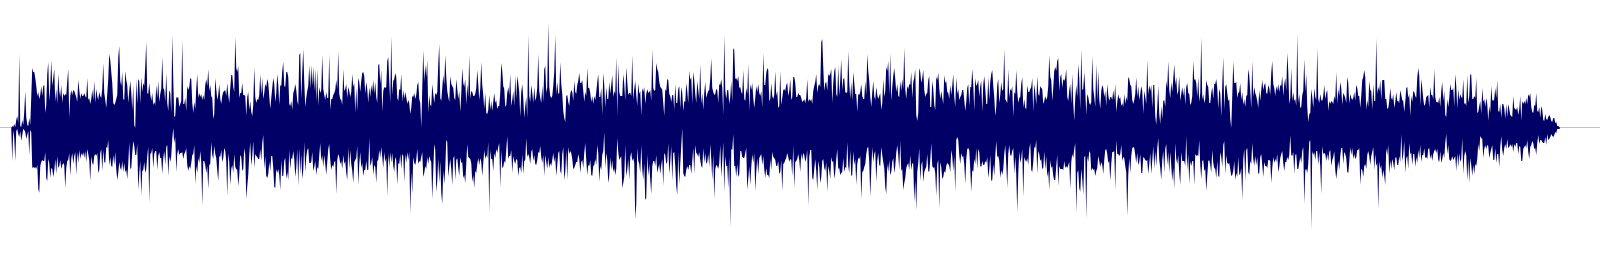 waveform of track #107682